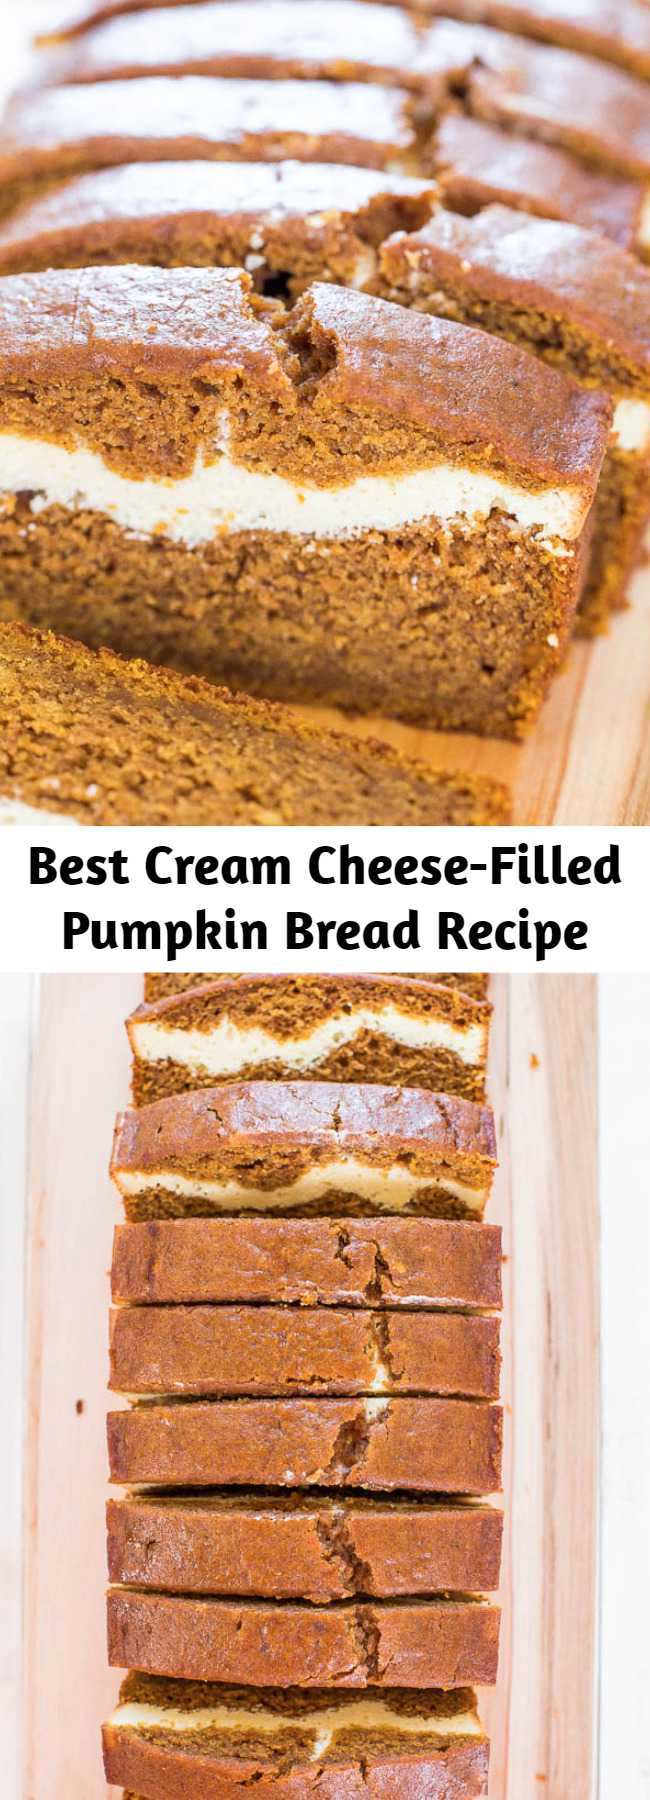 Best Cream Cheese-Filled Pumpkin Bread Recipe - This is without a doubt the BEST pumpkin bread recipe! This pumpkin cream cheese bread tastes like it has cheesecake baked into the middle. You'll definitely want a second slice! #pumpkindesserts #pumpkinrecipes